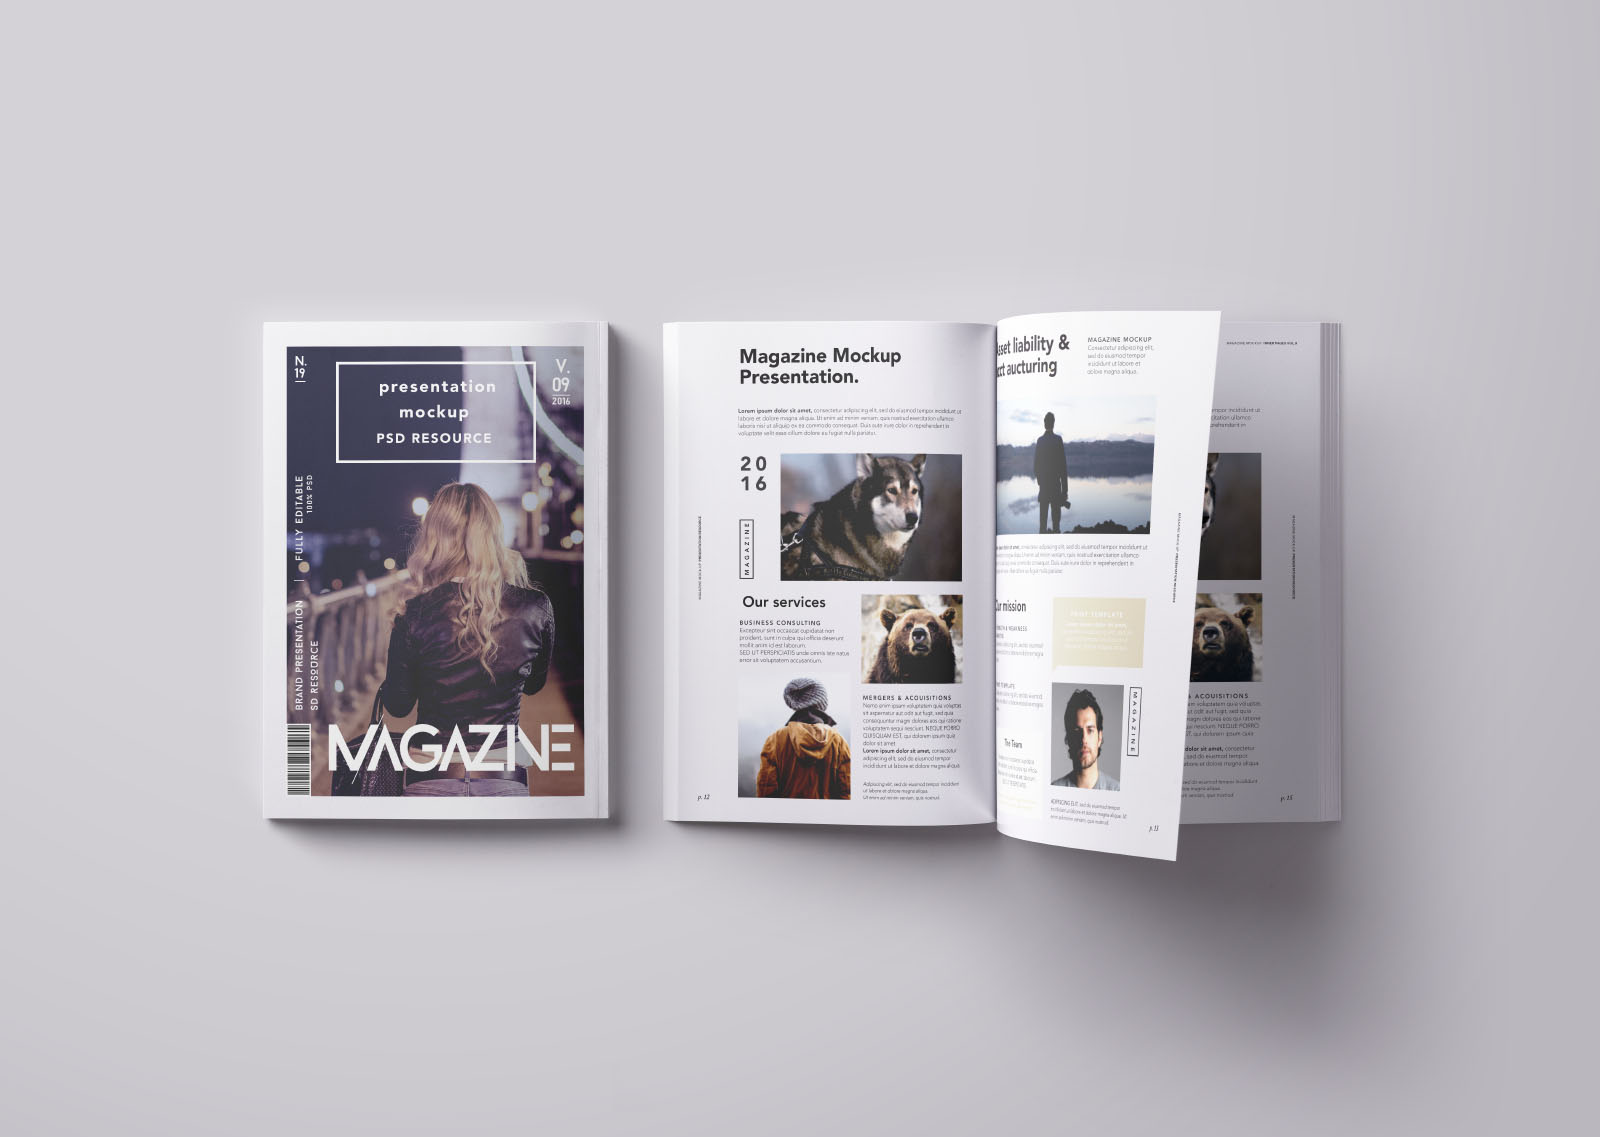 Opened and Closed Top View Magazine Mockup